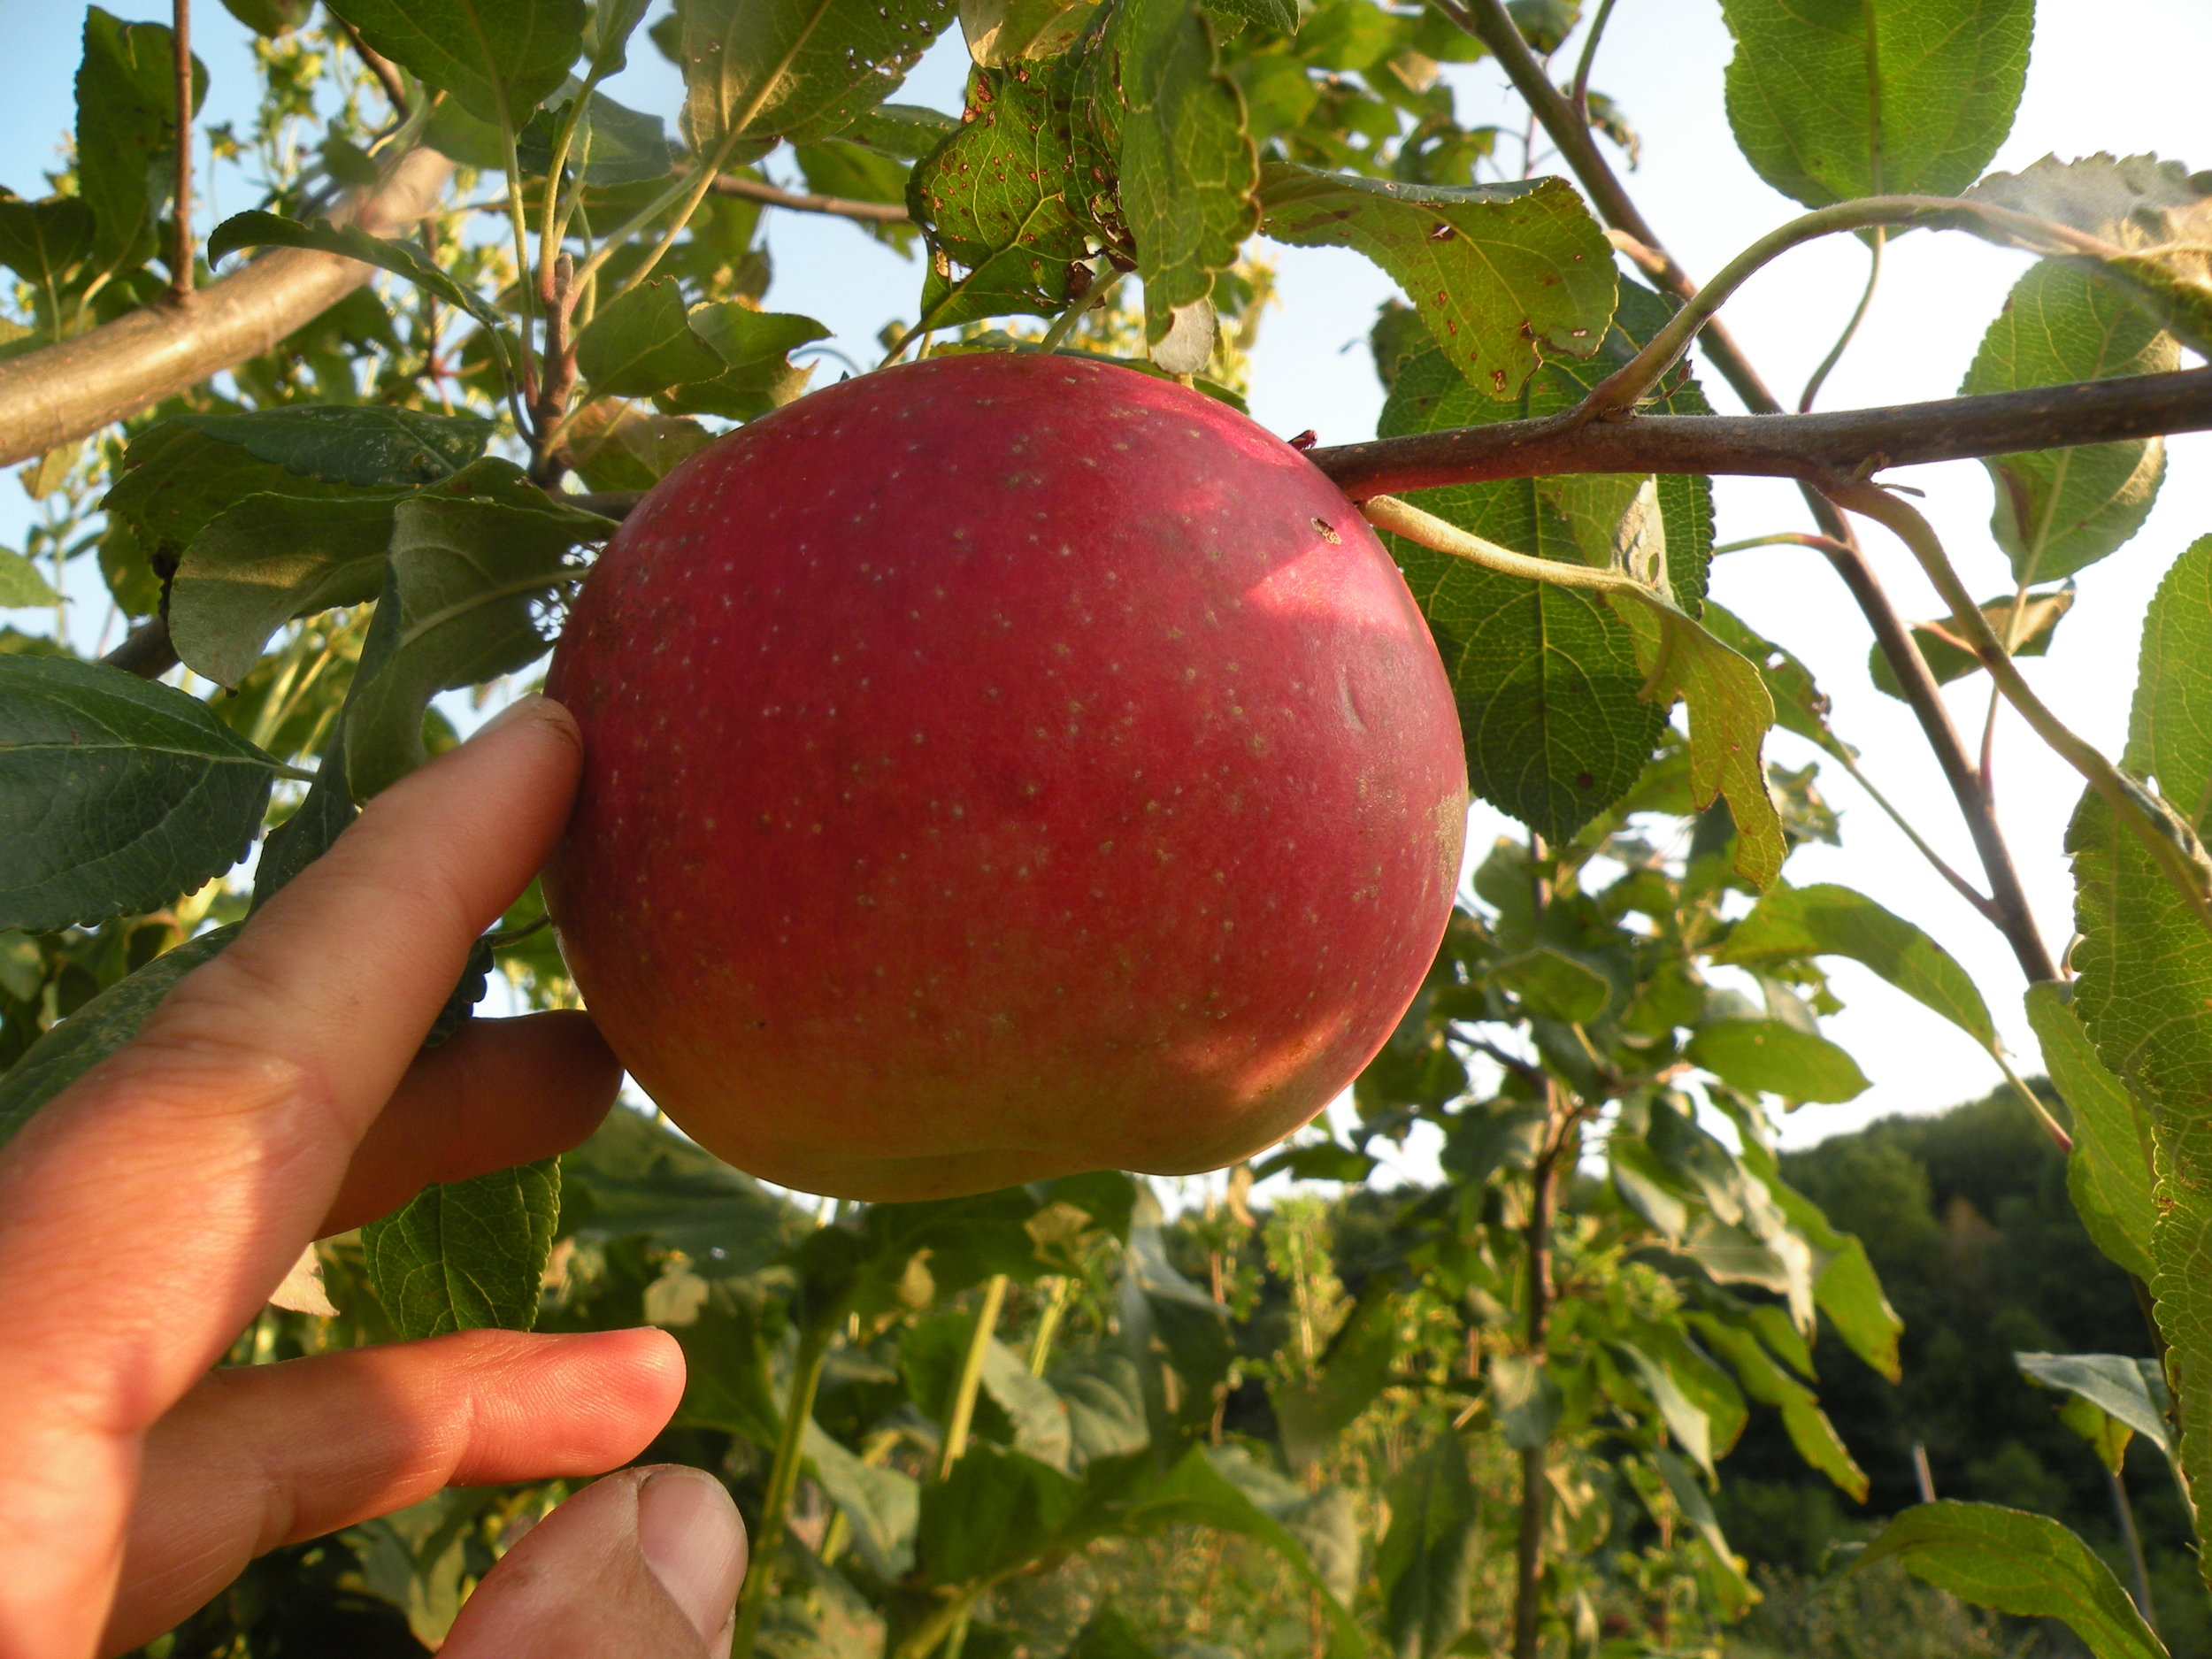 Zestar apple ripening on our young tree. We are just starting to harvest the rewards of planting apple trees 2 - 3 years ago. Photo by Erin Schneider